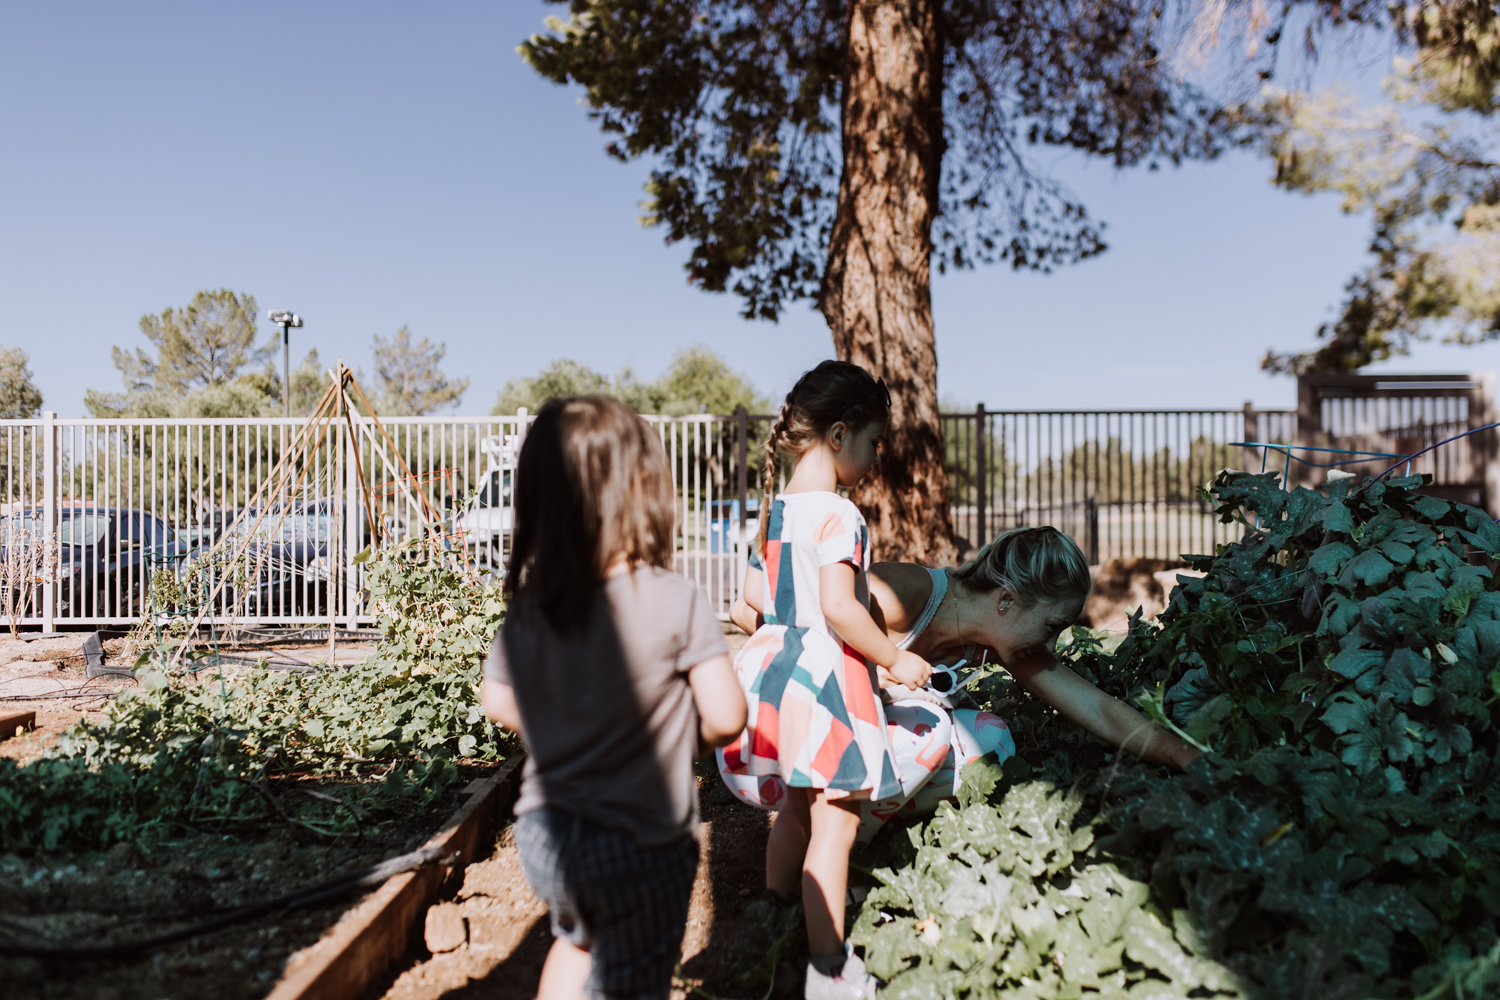 helping in the school garden with these kids! | thelovedesignedlife.com #gardeningforkids